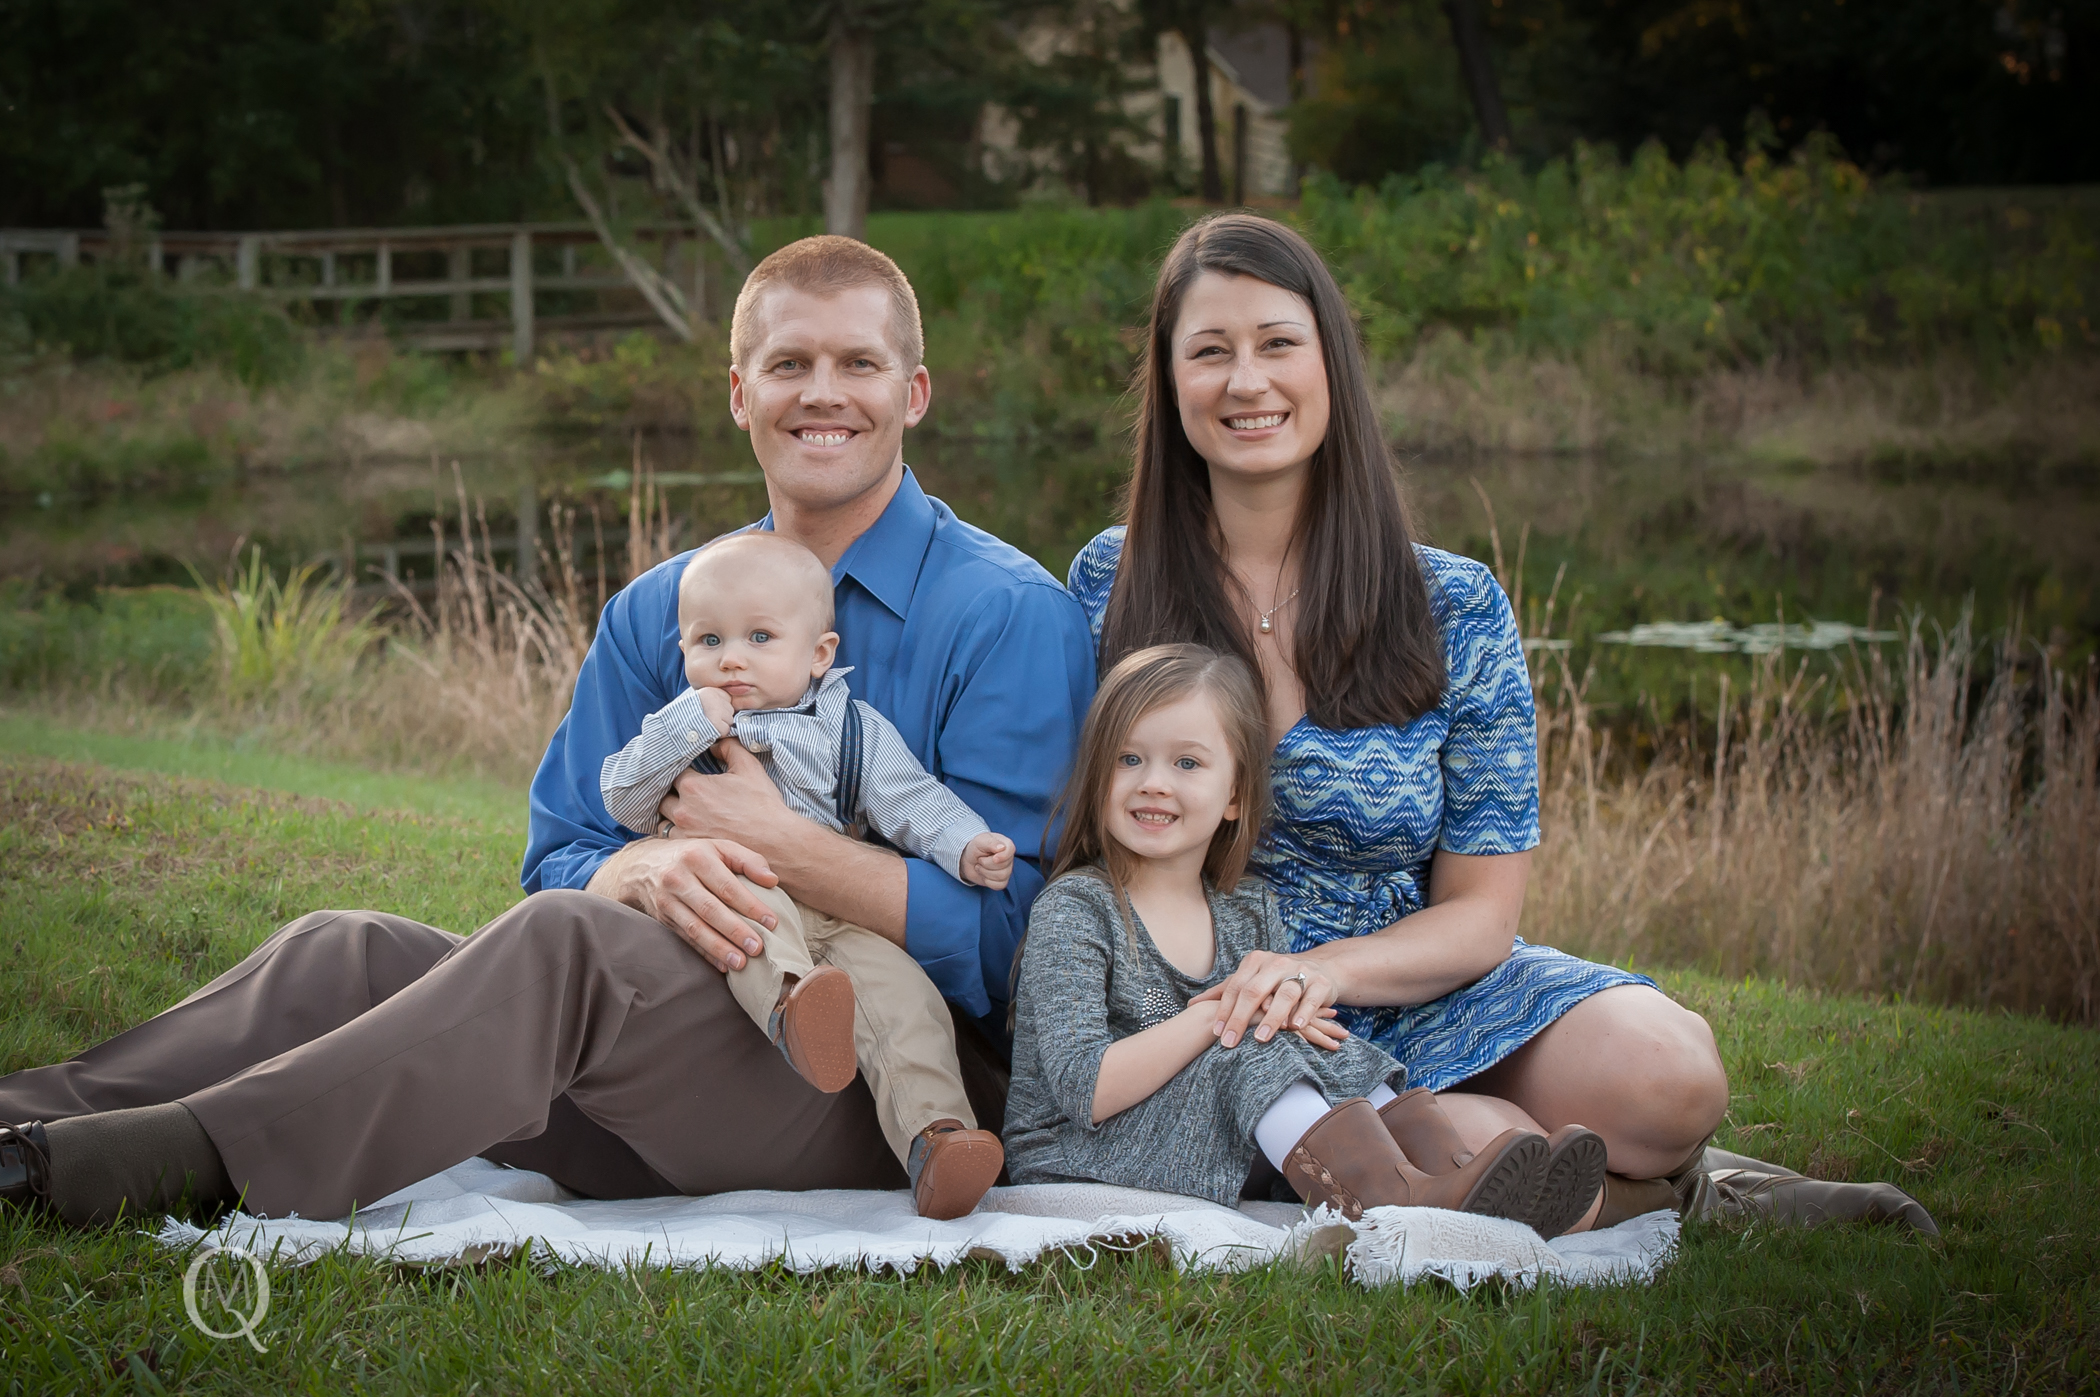 Family Photographer in Cherry Hill New Jersey